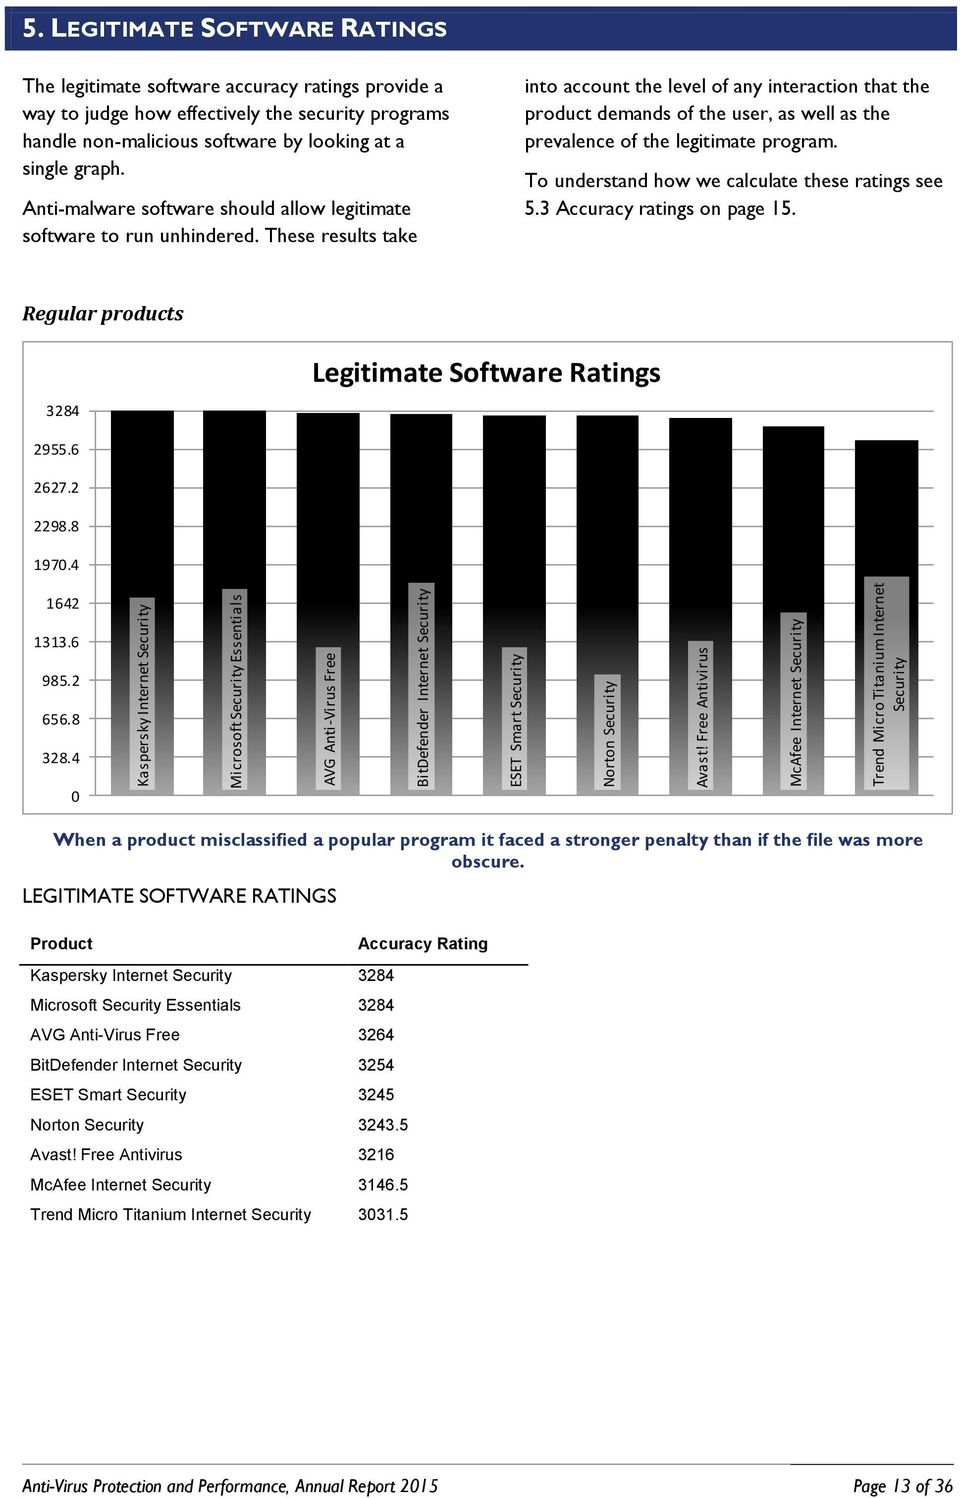 LEGITIMATE SOFTWARE RATINGS The legitimate software accuracy ratings provide a way to judge how effectively the security programs handle non-malicious software by looking at a single graph.